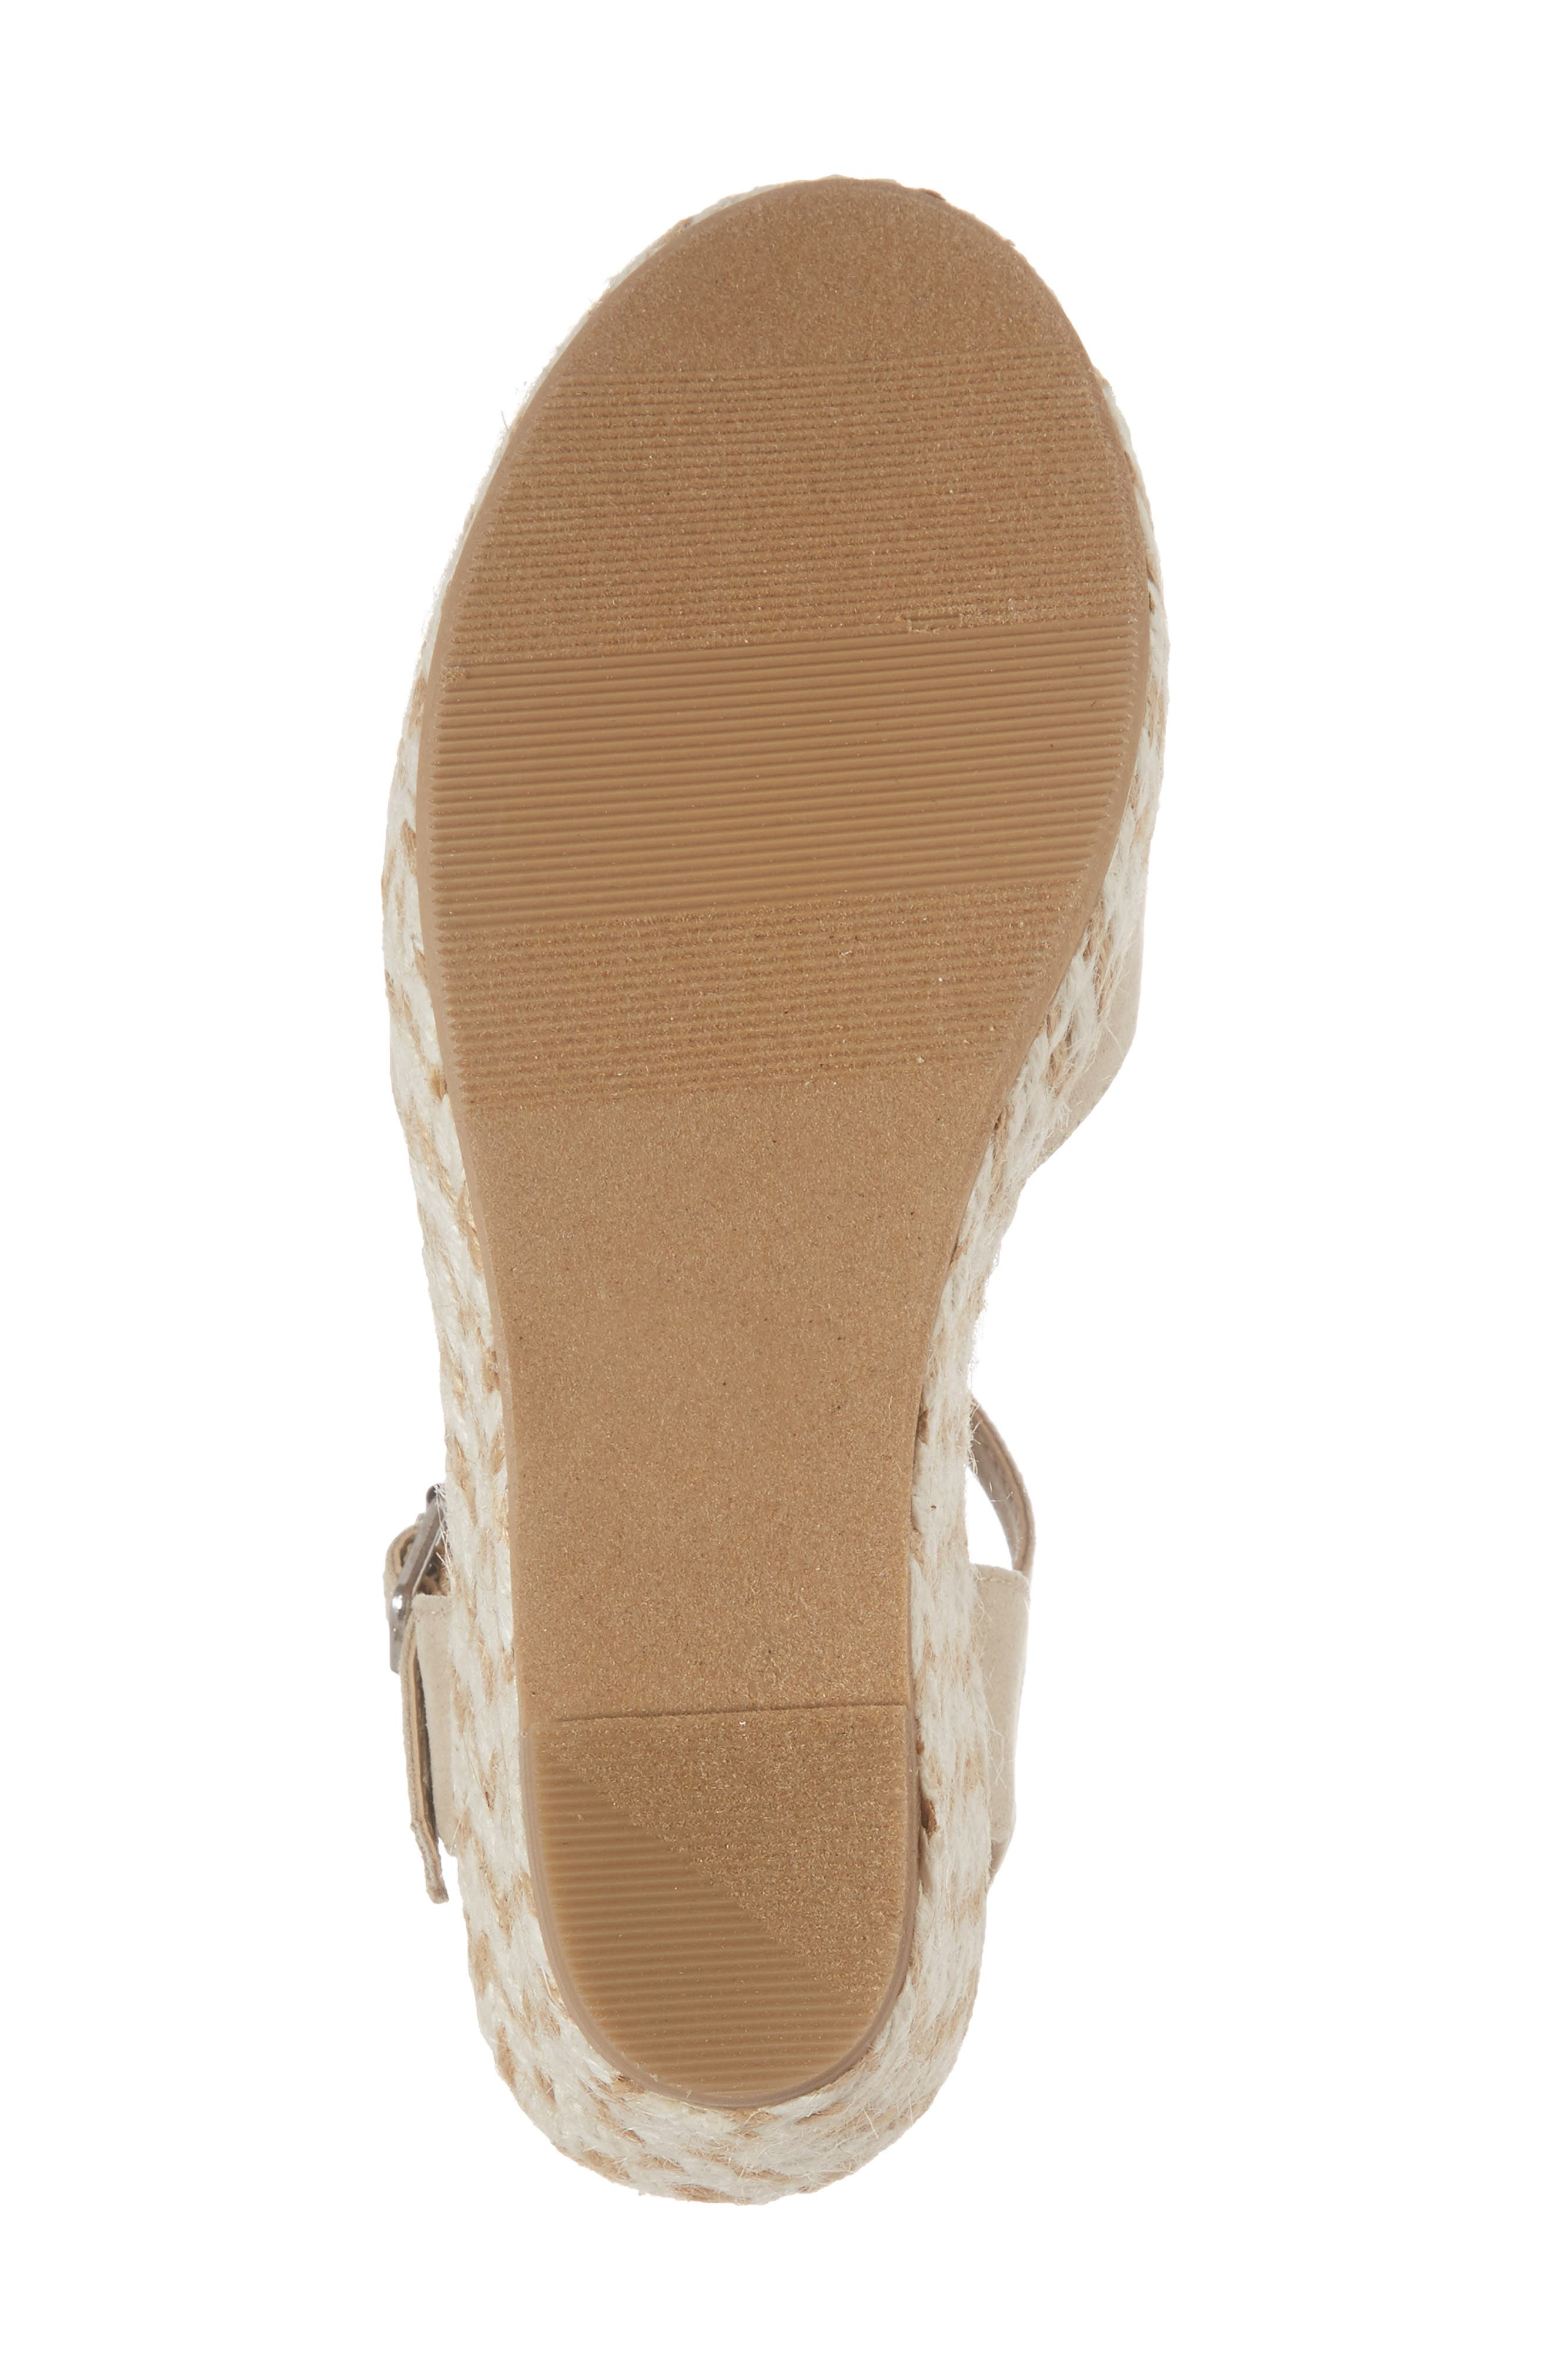 Wendy Espadrille Wedge Sandal,                             Alternate thumbnail 6, color,                             277